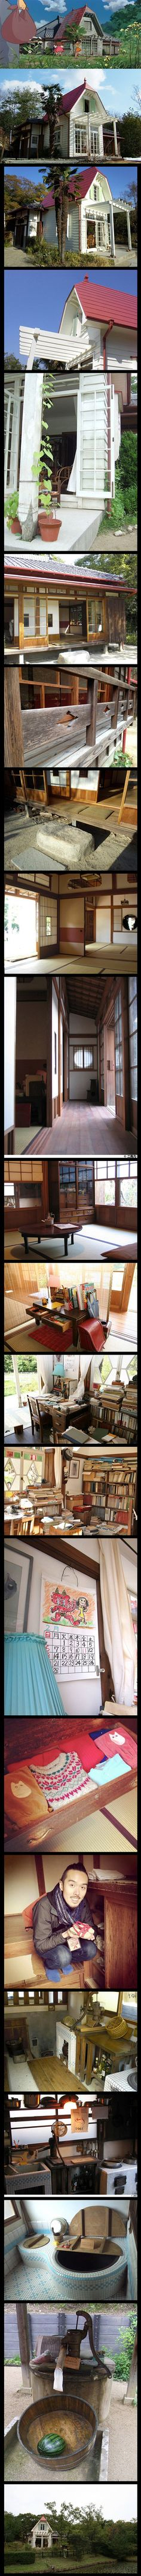 "This is a real life reproduction (complete with furnished interior!) of Satsuki and Mei's house from ""My Neighbor Totoro"";. Apparently it was built back in 2005 For the World's Fair near Nagoya, Japan and was designed by Hayao Miyazaki's son Gorō."